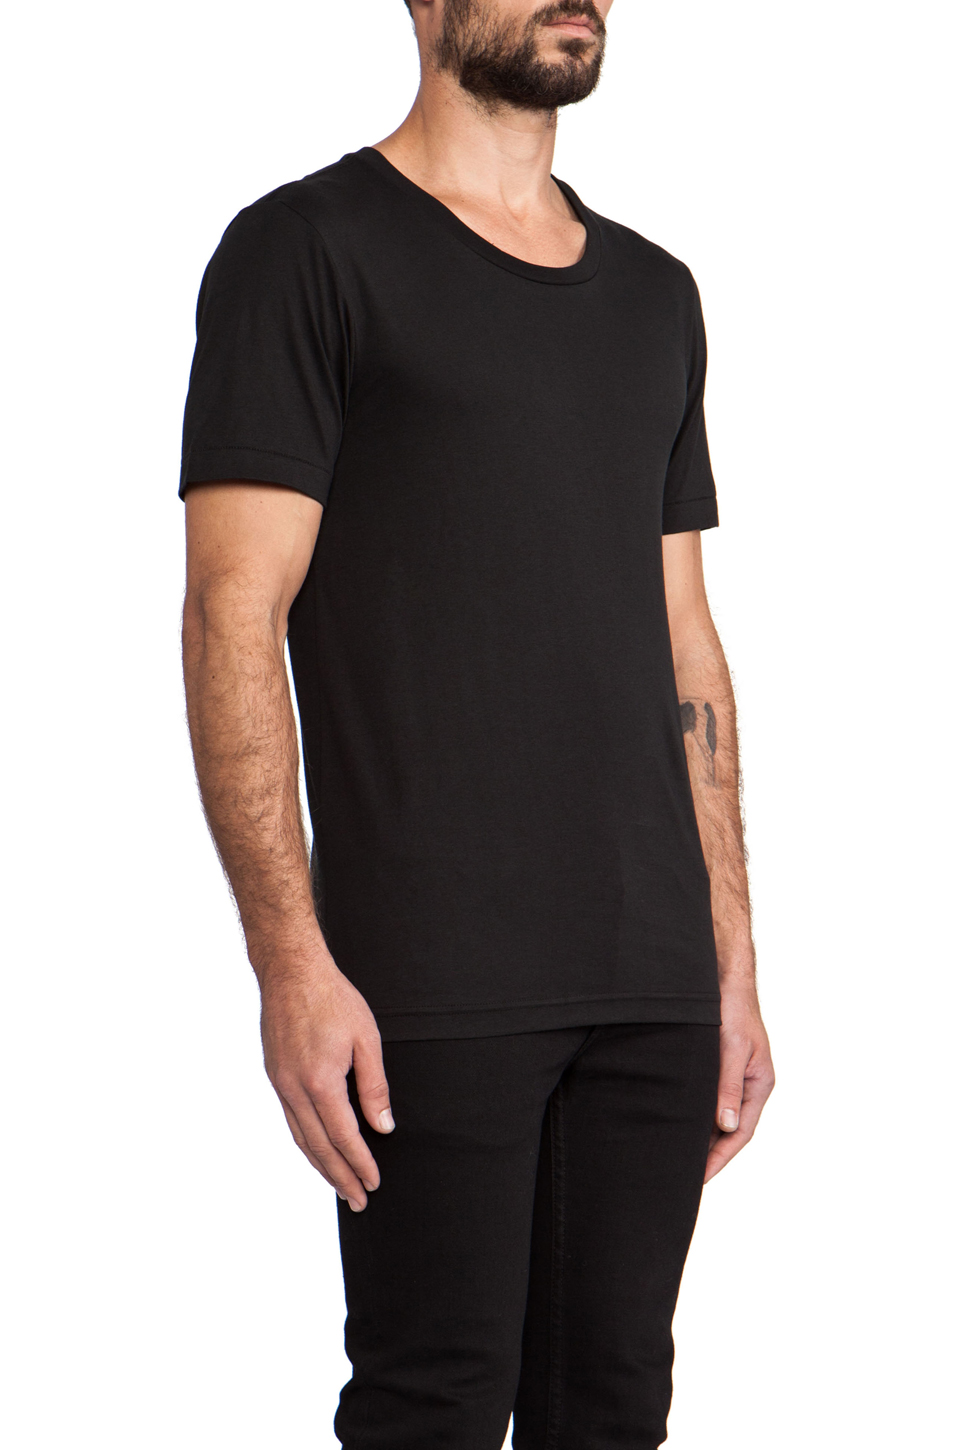 BLK DNM T-Shirt 3 in Black